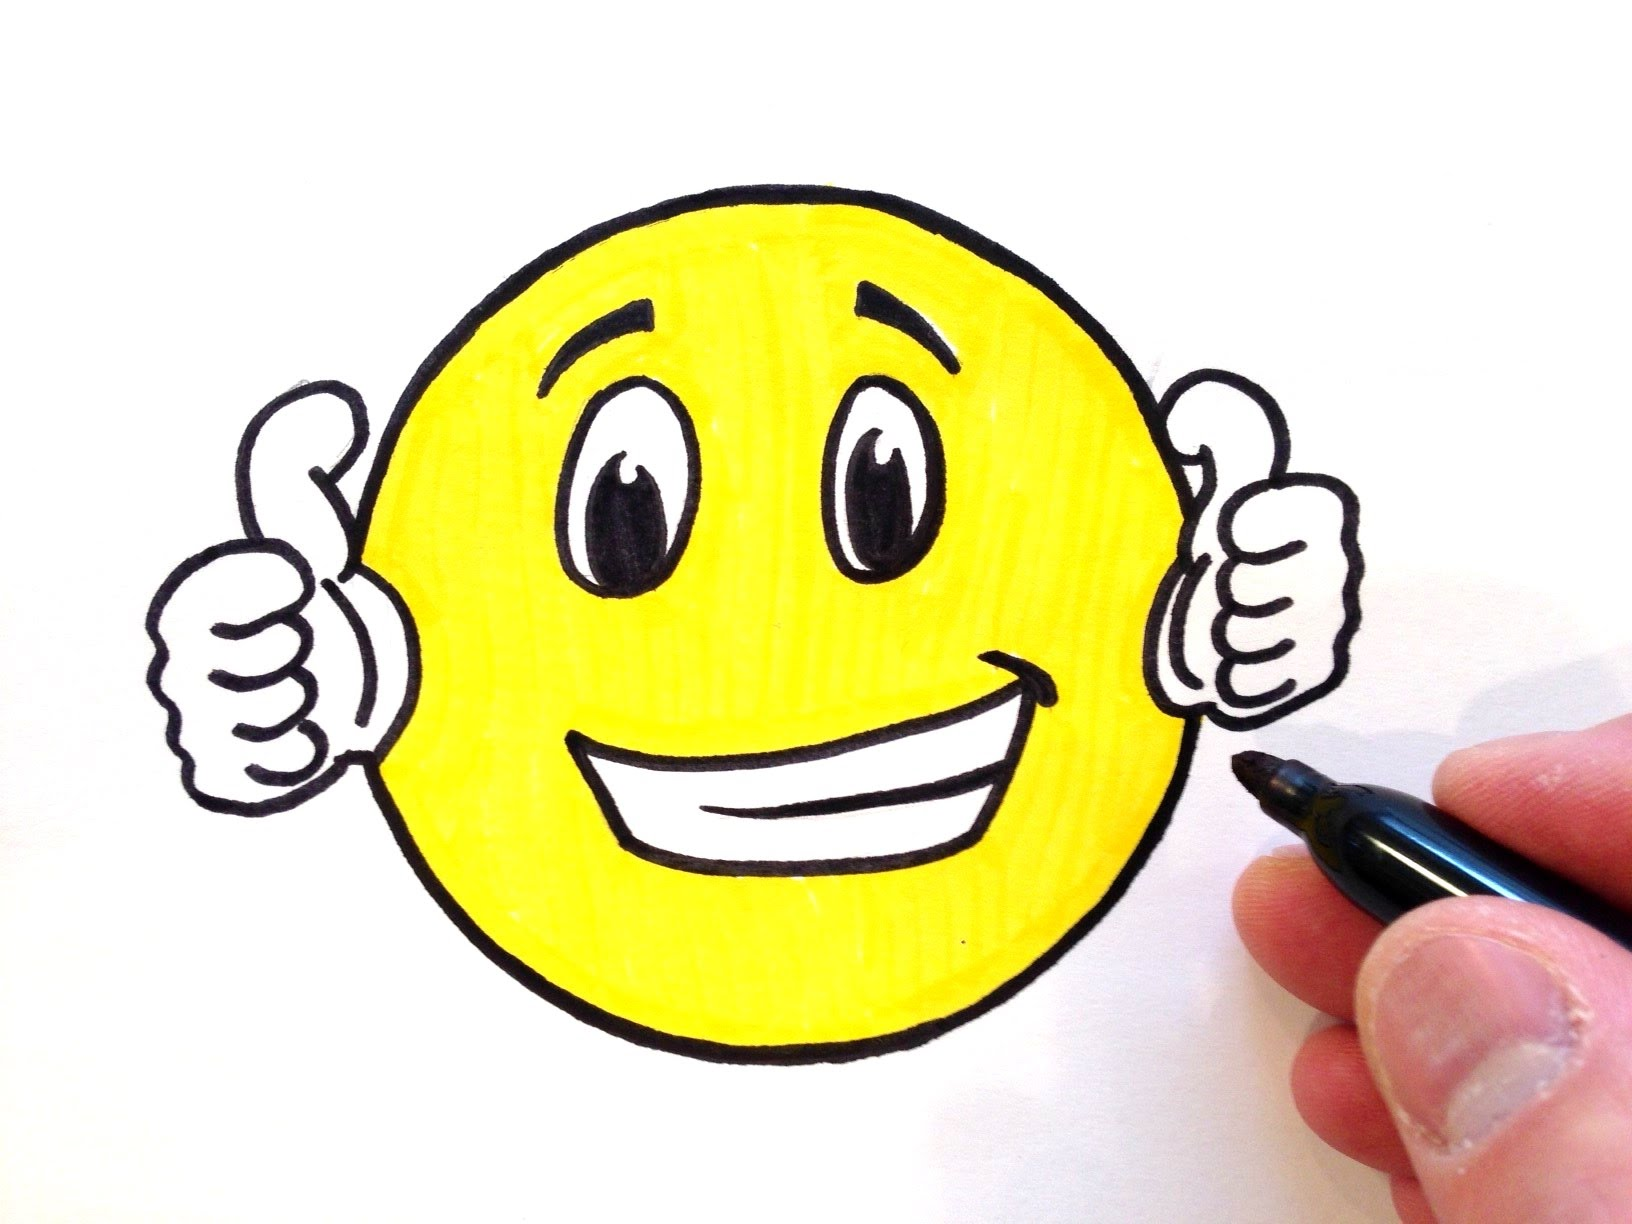 Smiley face thumbs up how to draw a thumbs up smiley face youtube